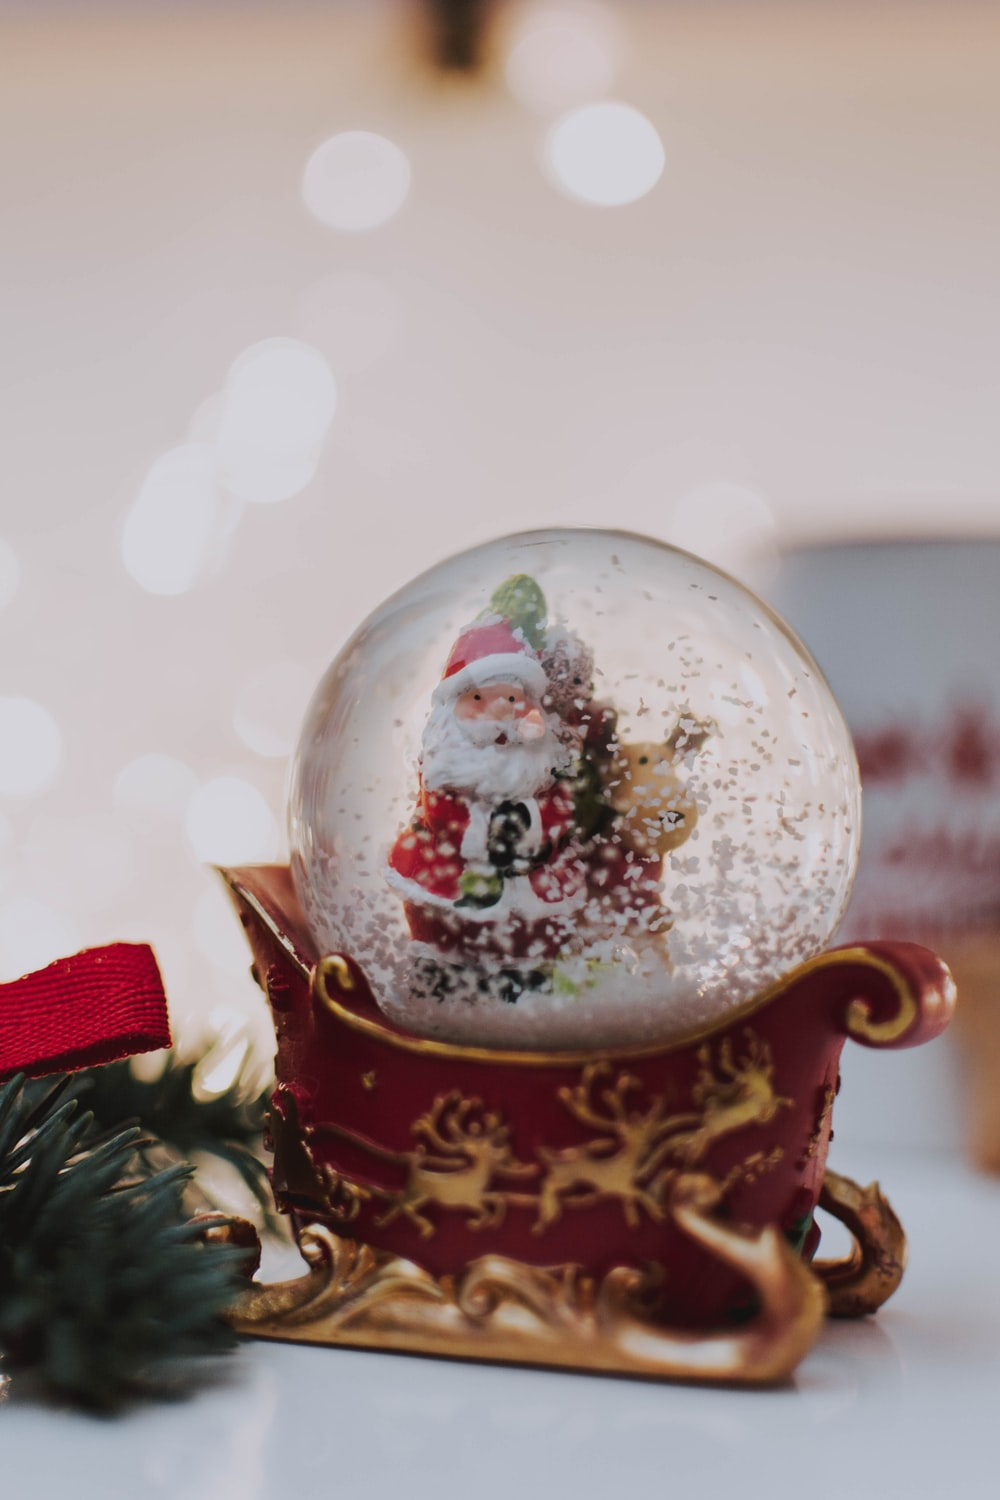 Santa snow globe near green Christmas tree